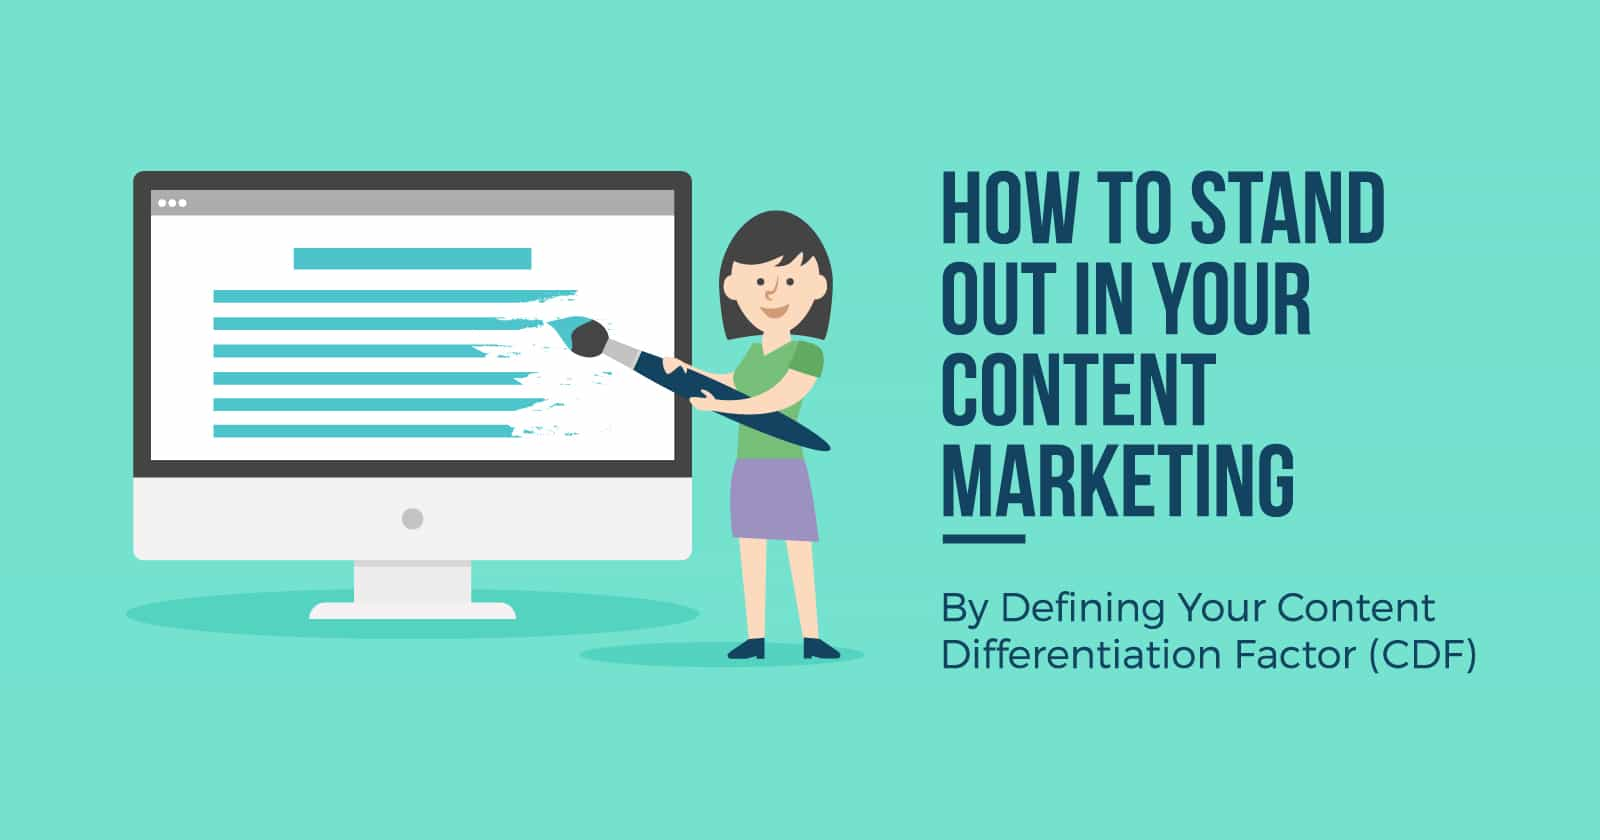 What's Your Content Differentiation Factor? by @JuliaEMcCoy